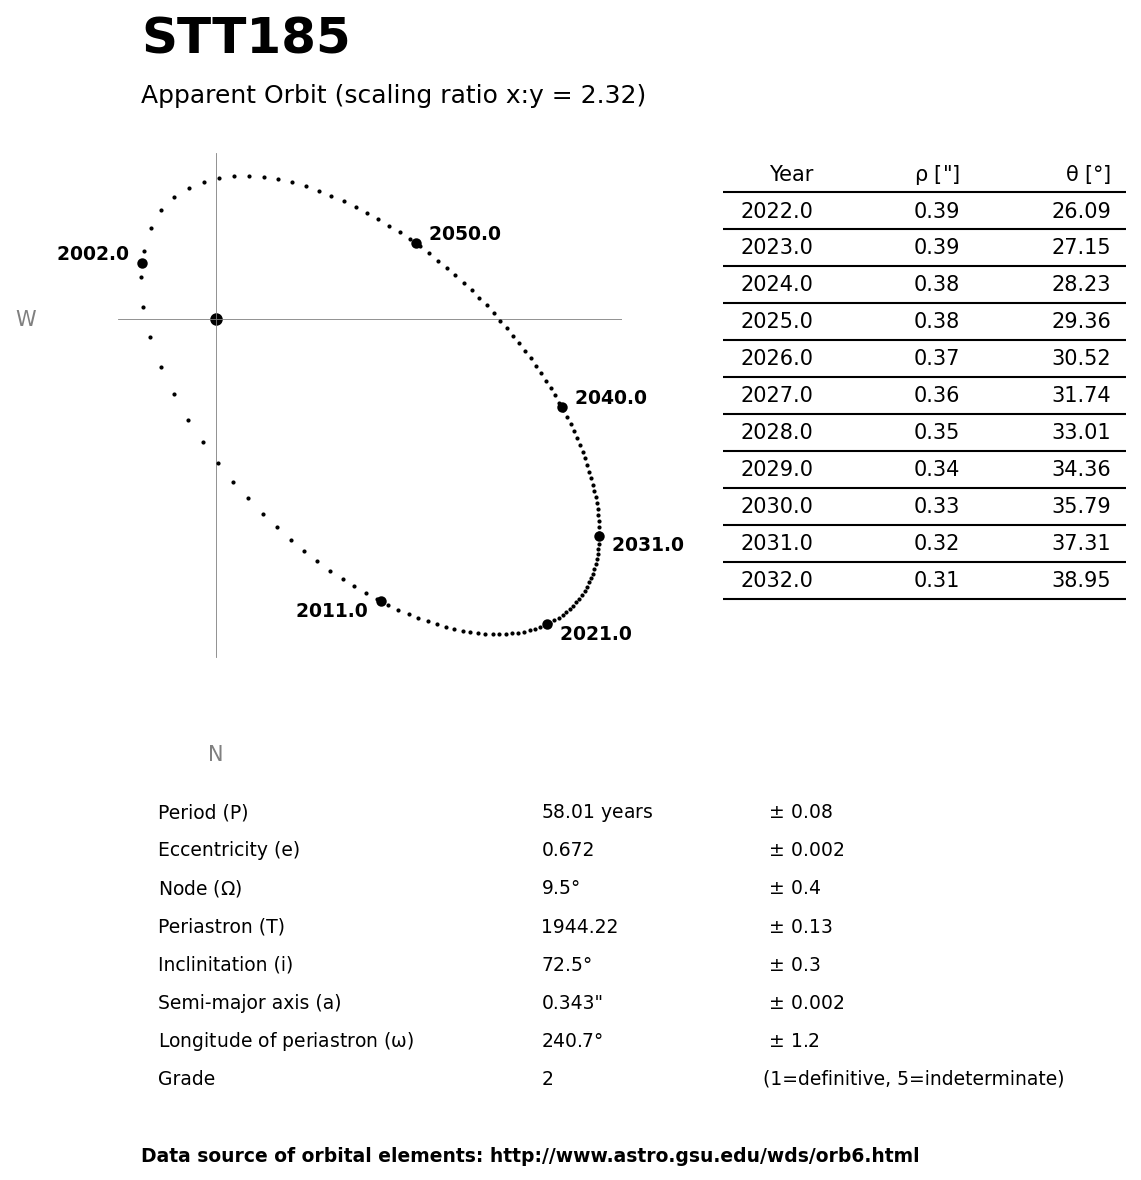 ../images/binary-star-orbits/STT185-orbit.jpg